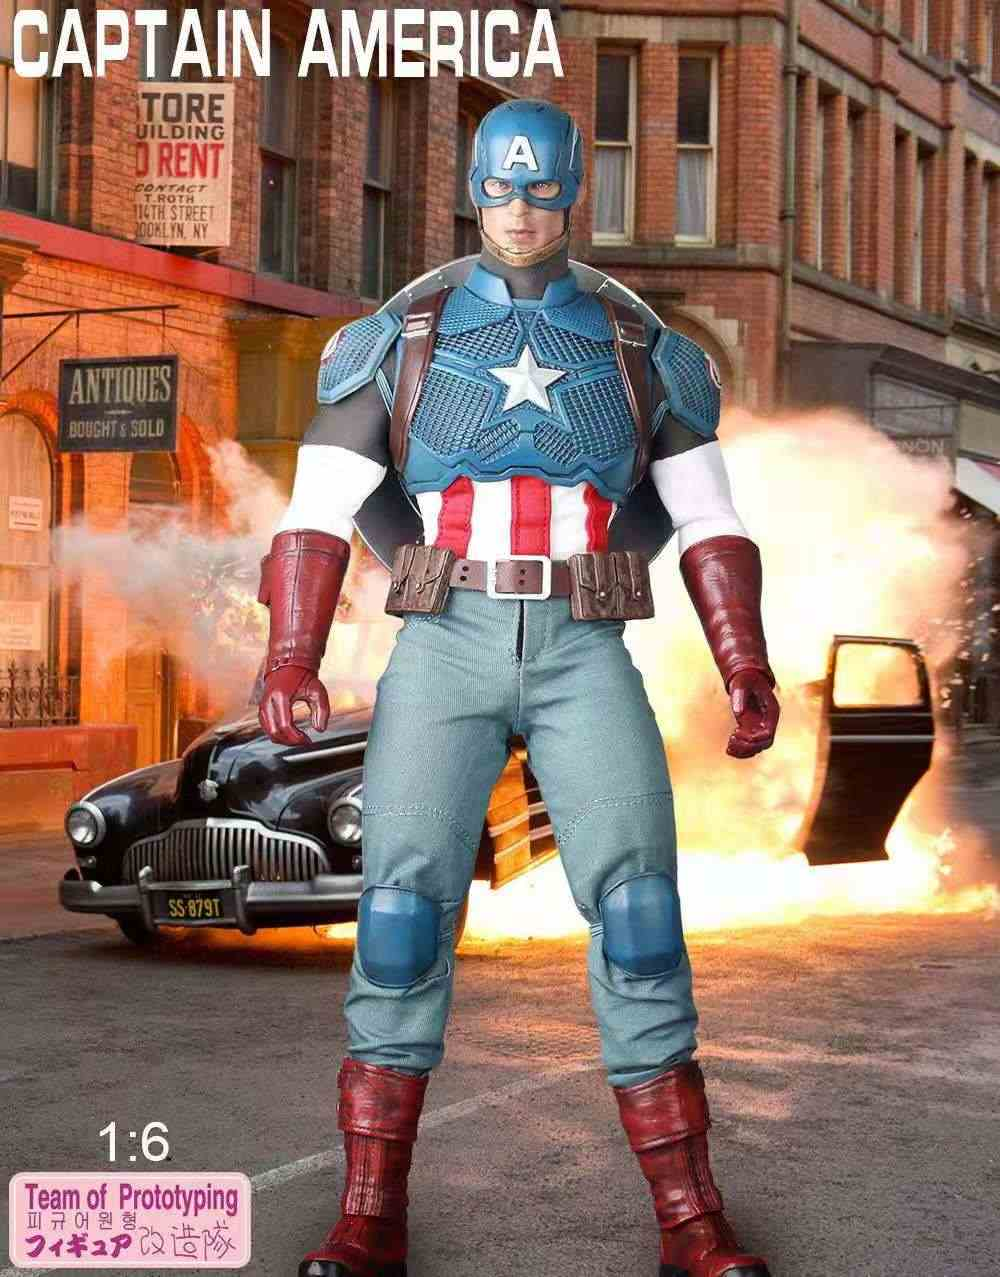 Marvel Captain America 1:6 articulations articulées jouets figurines mobiles